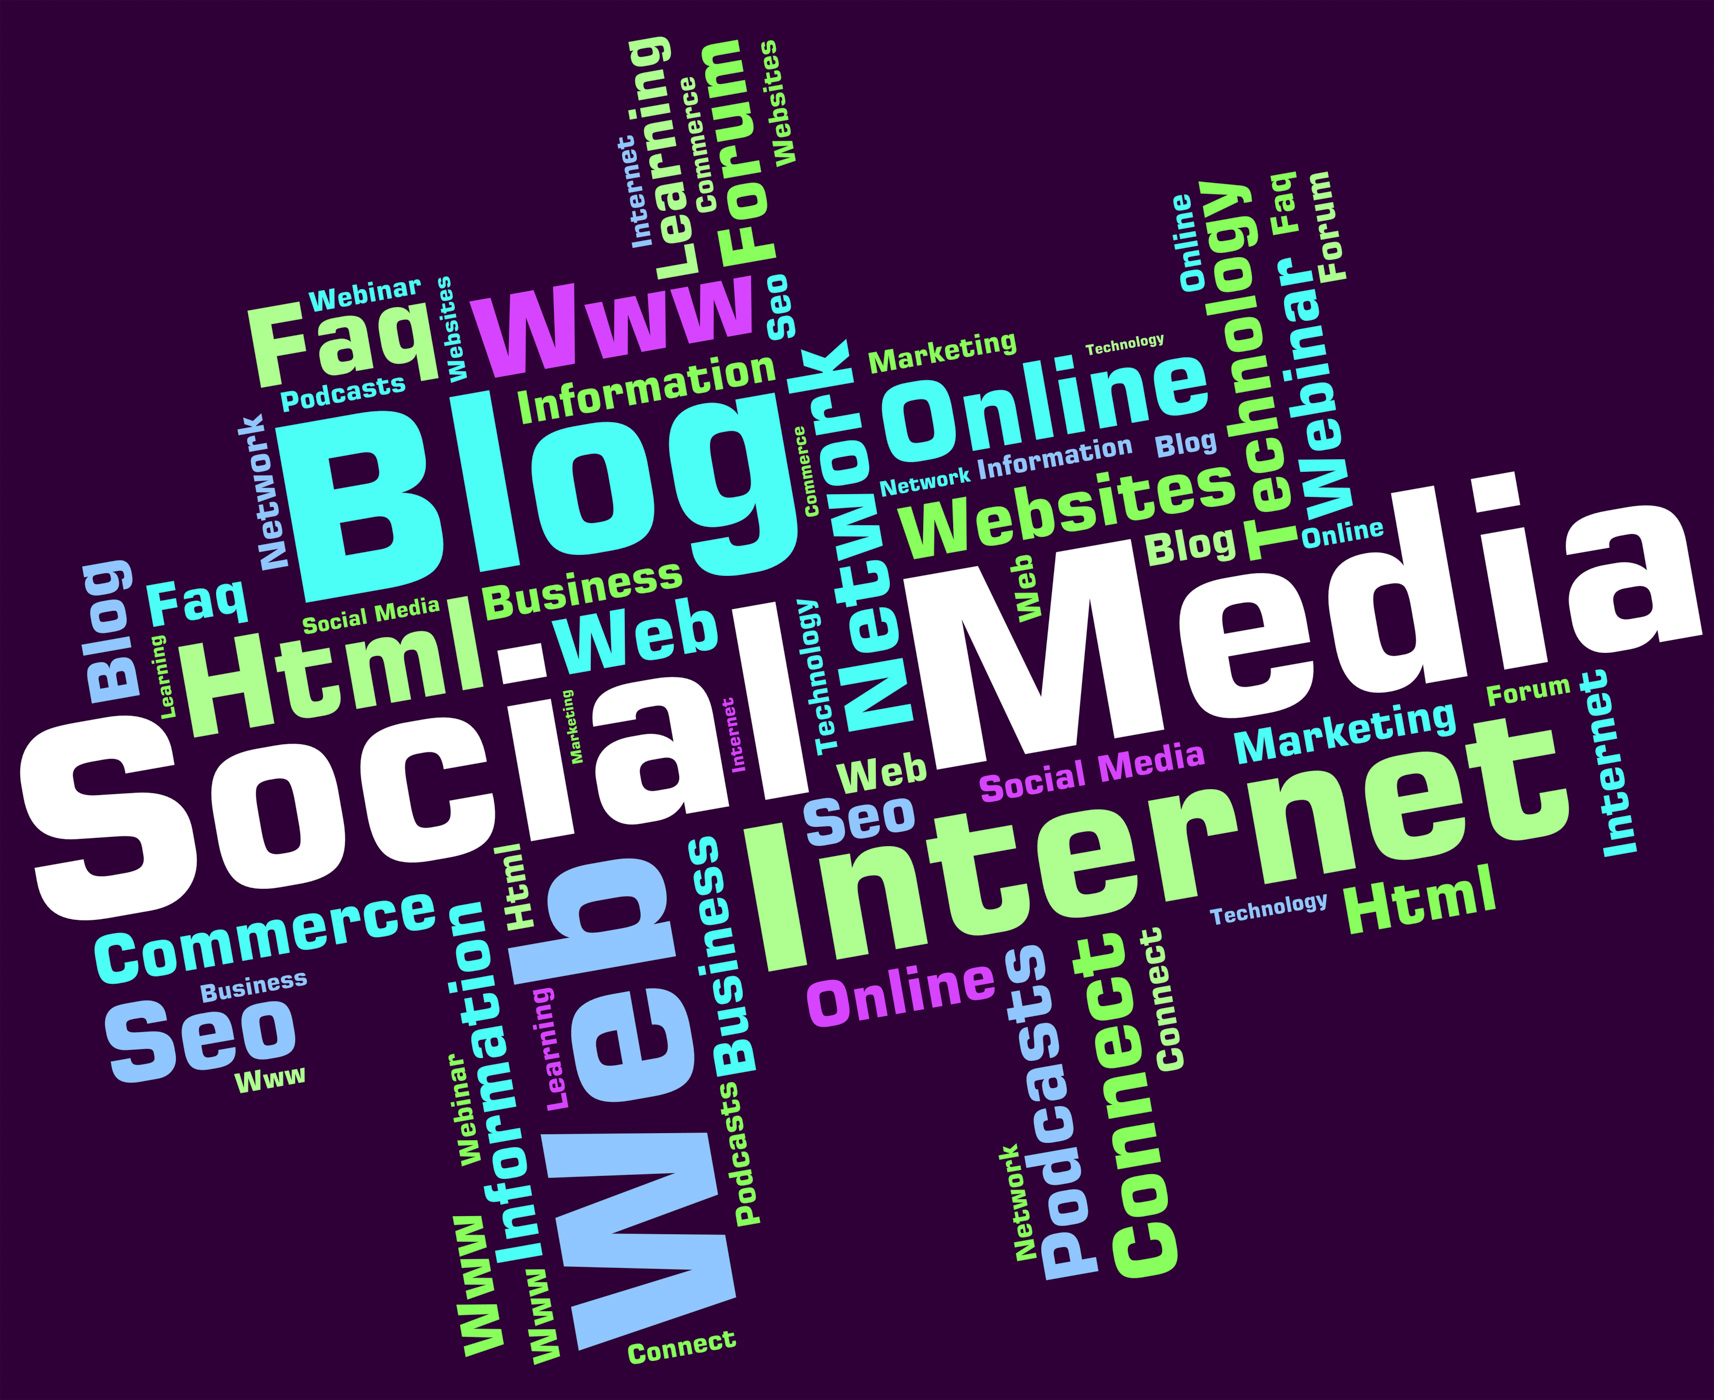 Social media represents news feed and blogs photo